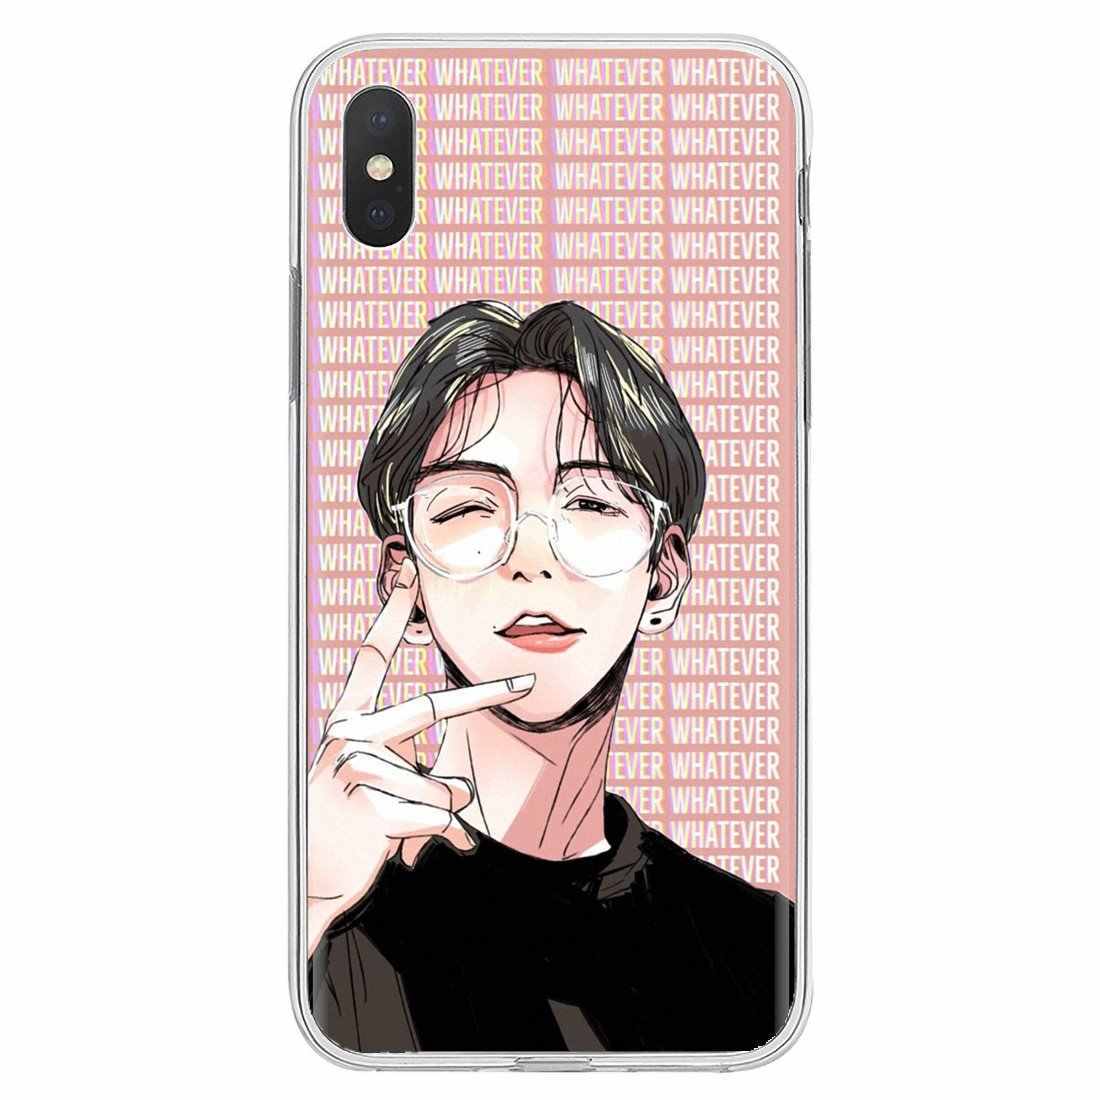 Inspirational Silicone Phone Case Kpop EXO Lucky For Huawei G7 G8 P7 P8 P9 P10 P20 P30 Lite Mini Pro P Smart 2017 2018 2019